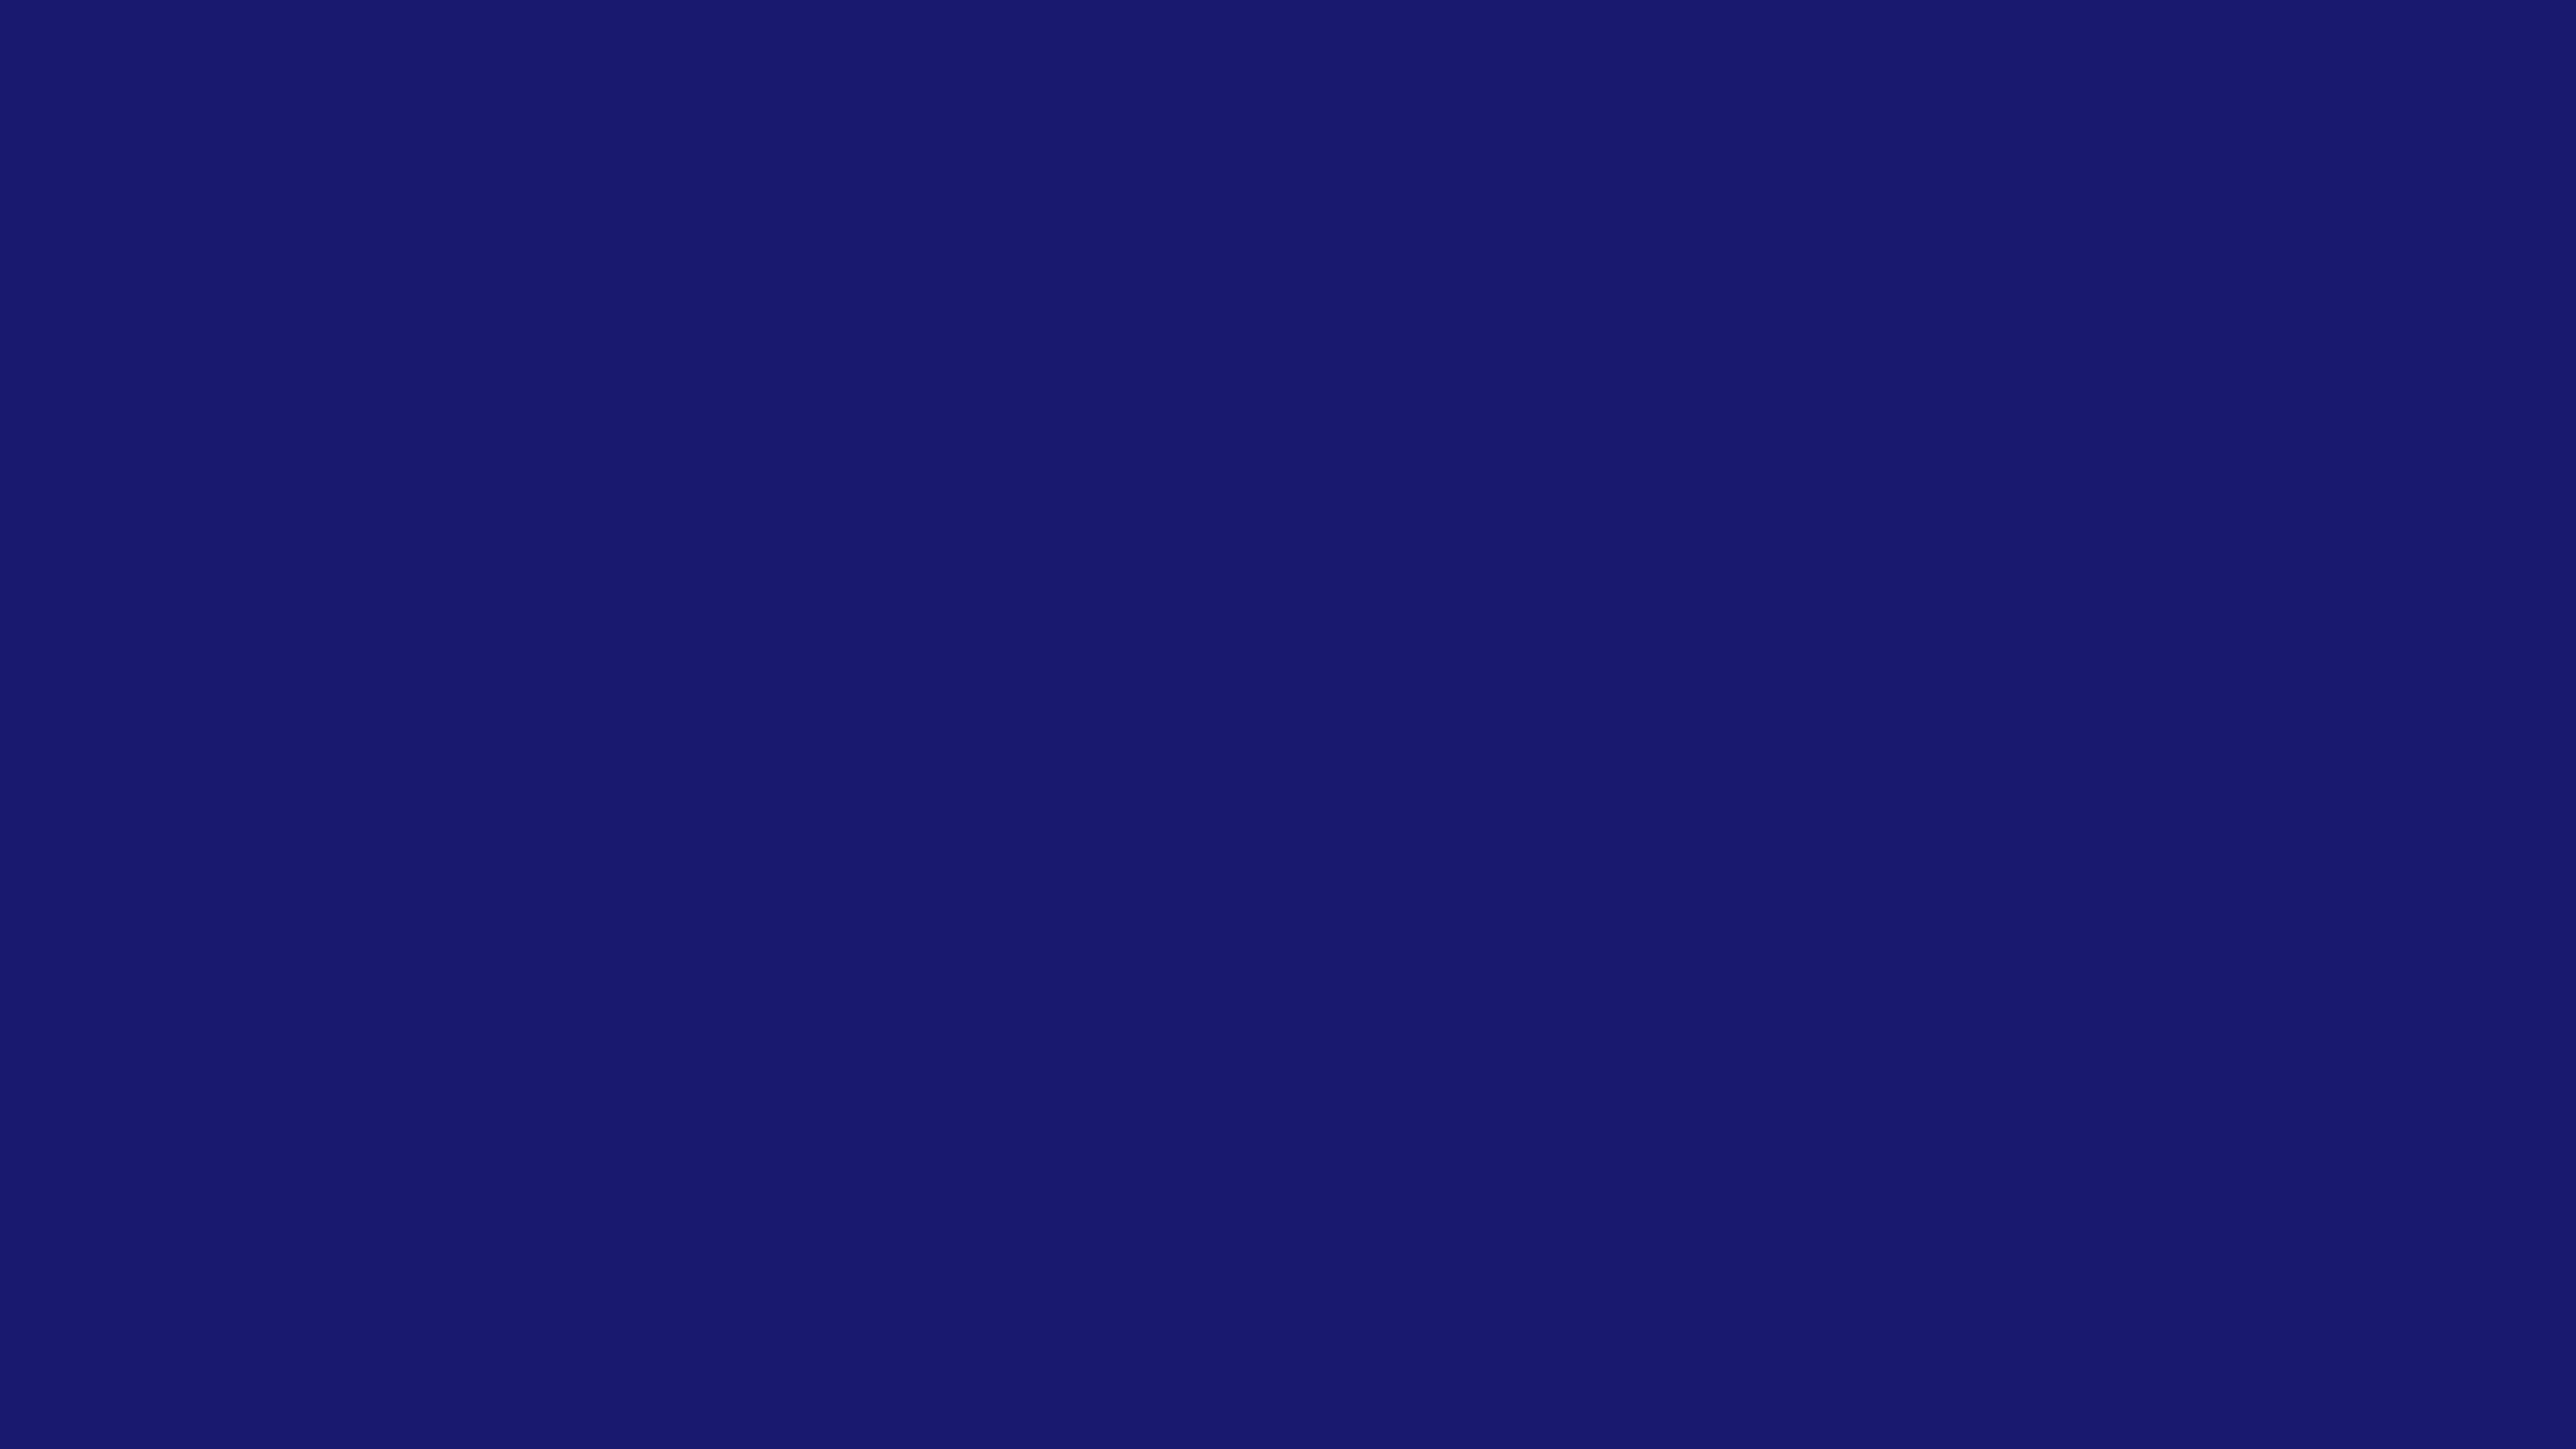 5120x2880 Midnight Blue Solid Color Background